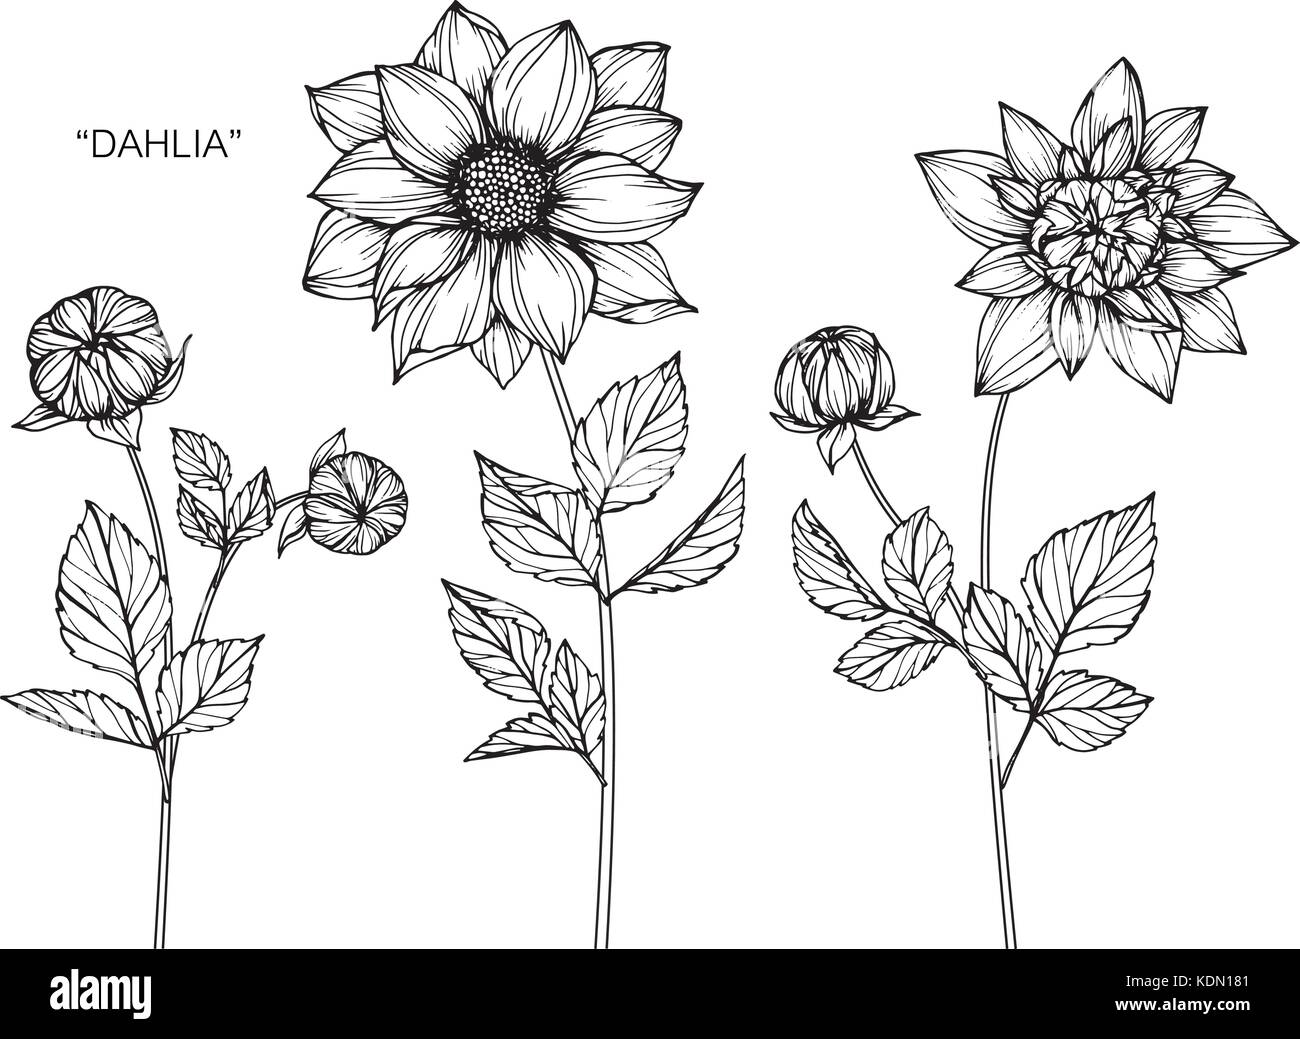 Dahlia Flower Drawing Illustration Black And White With Line Art